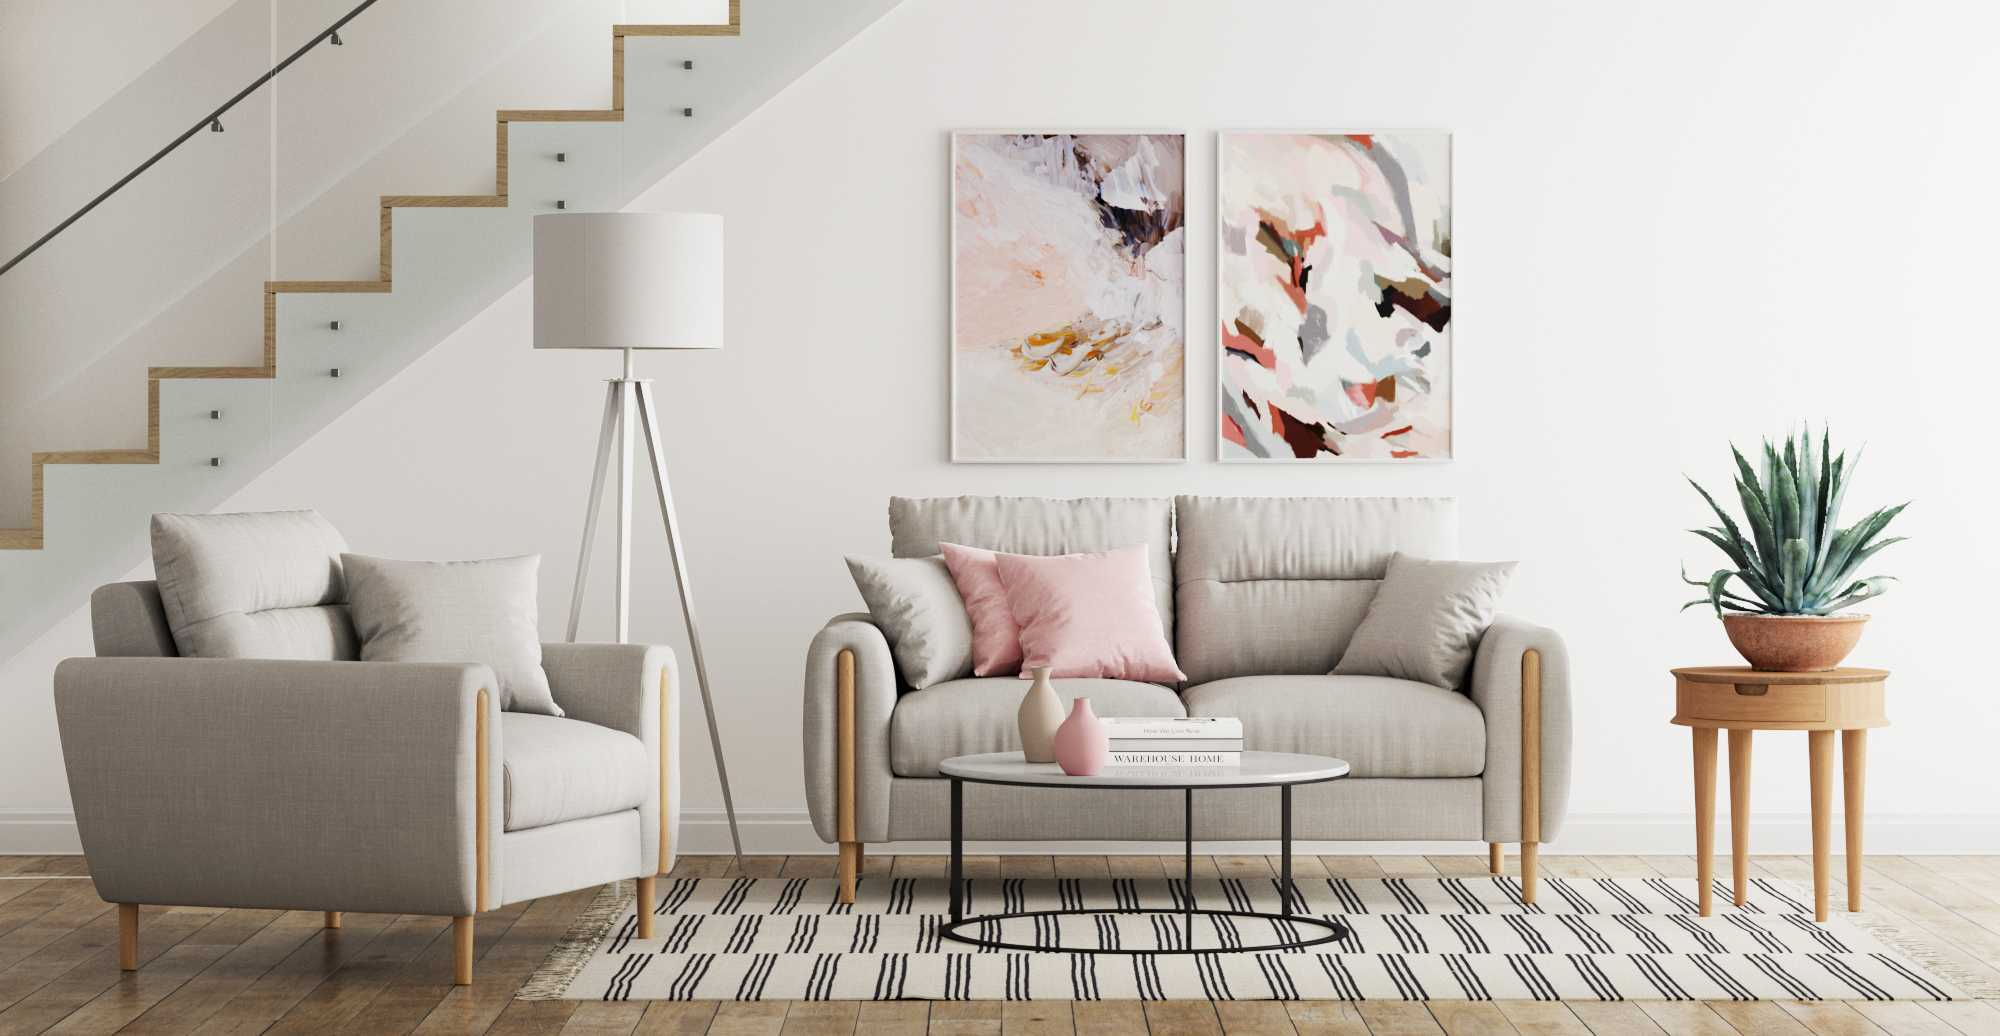 Brosa Oslo Armchair and Oslo 2 Seater Sofa styled in new Art Deco living room